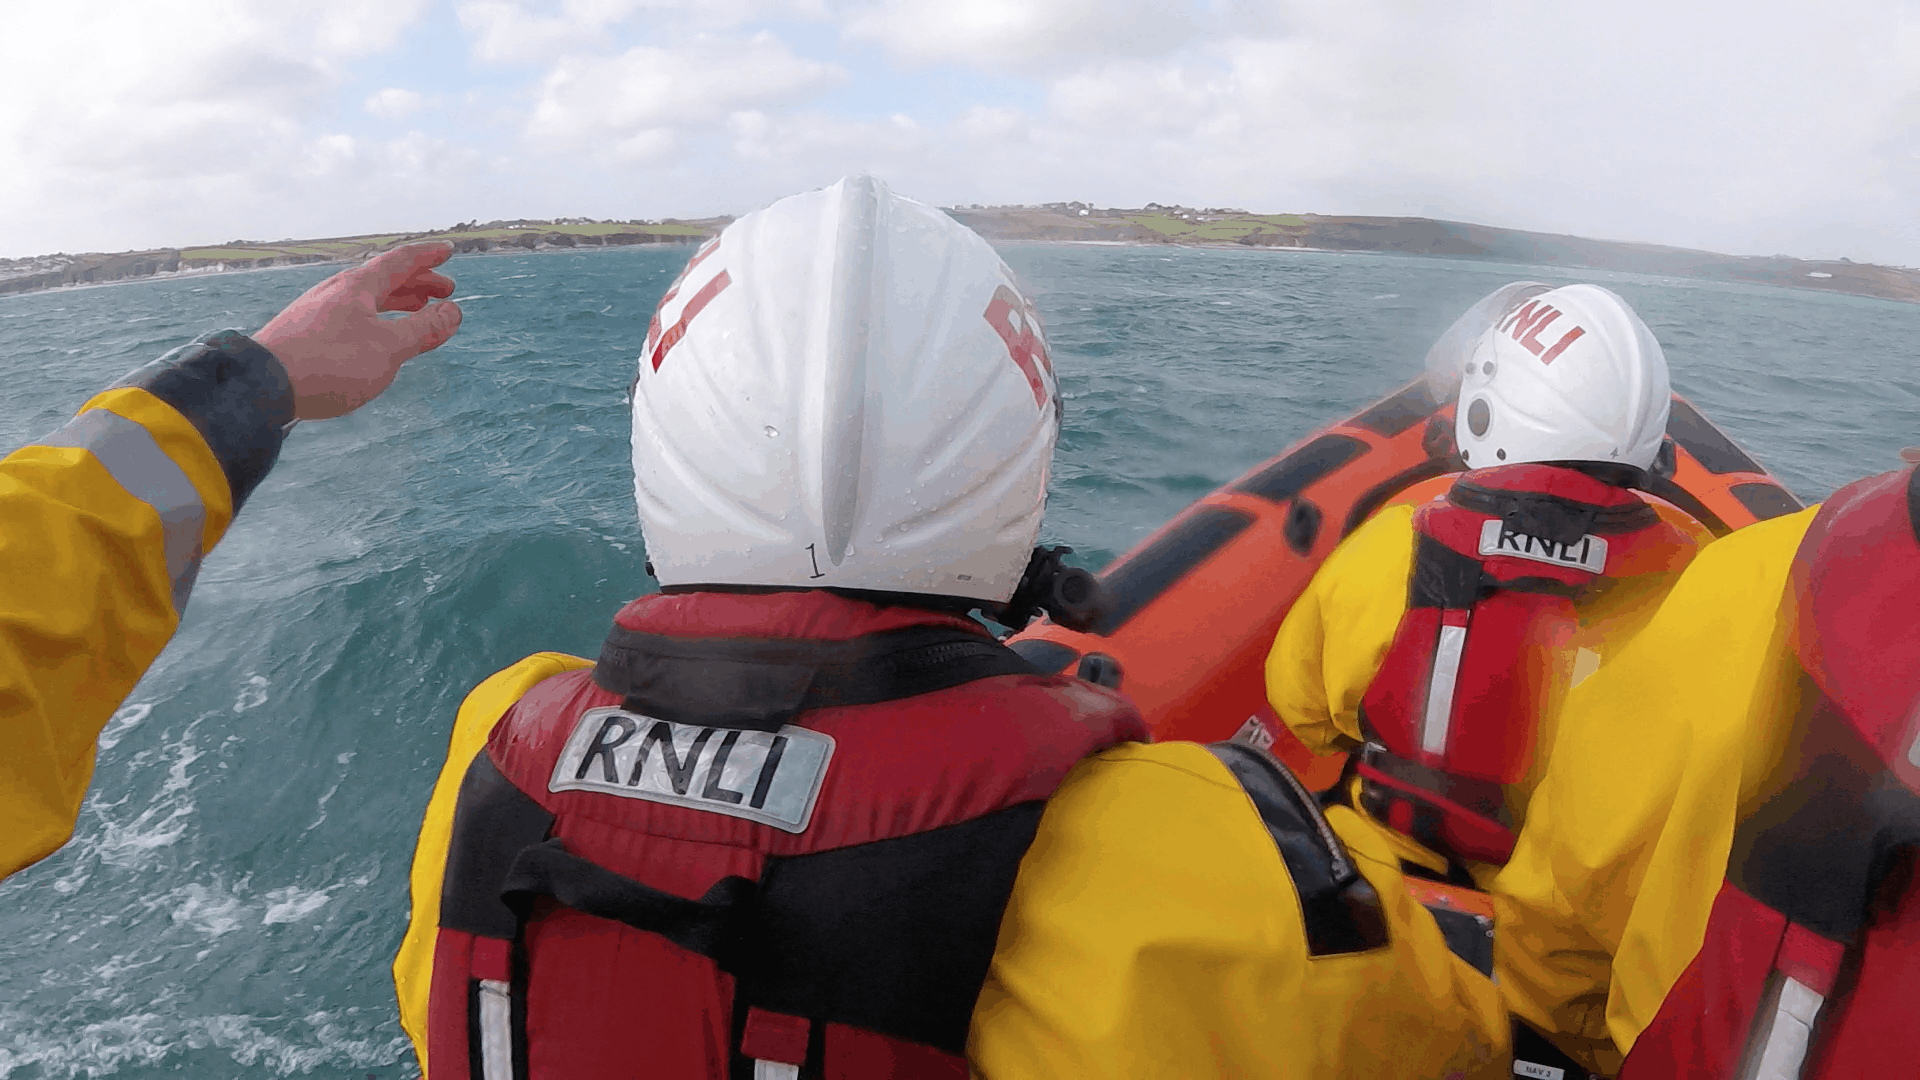 Image of inshore lifeboat and crew going to aid of kayaker